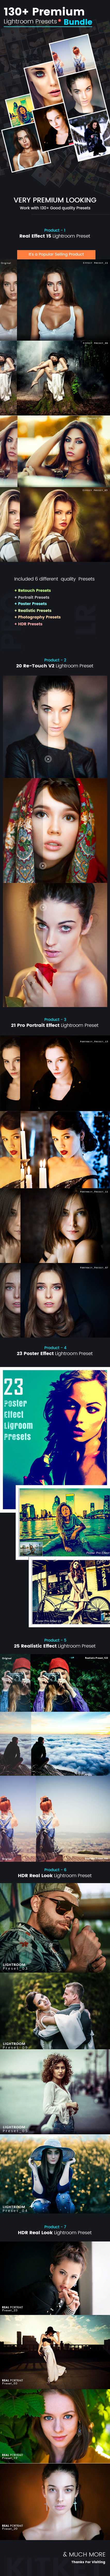 130+ Presets Bundle - Portrait Lightroom Presets